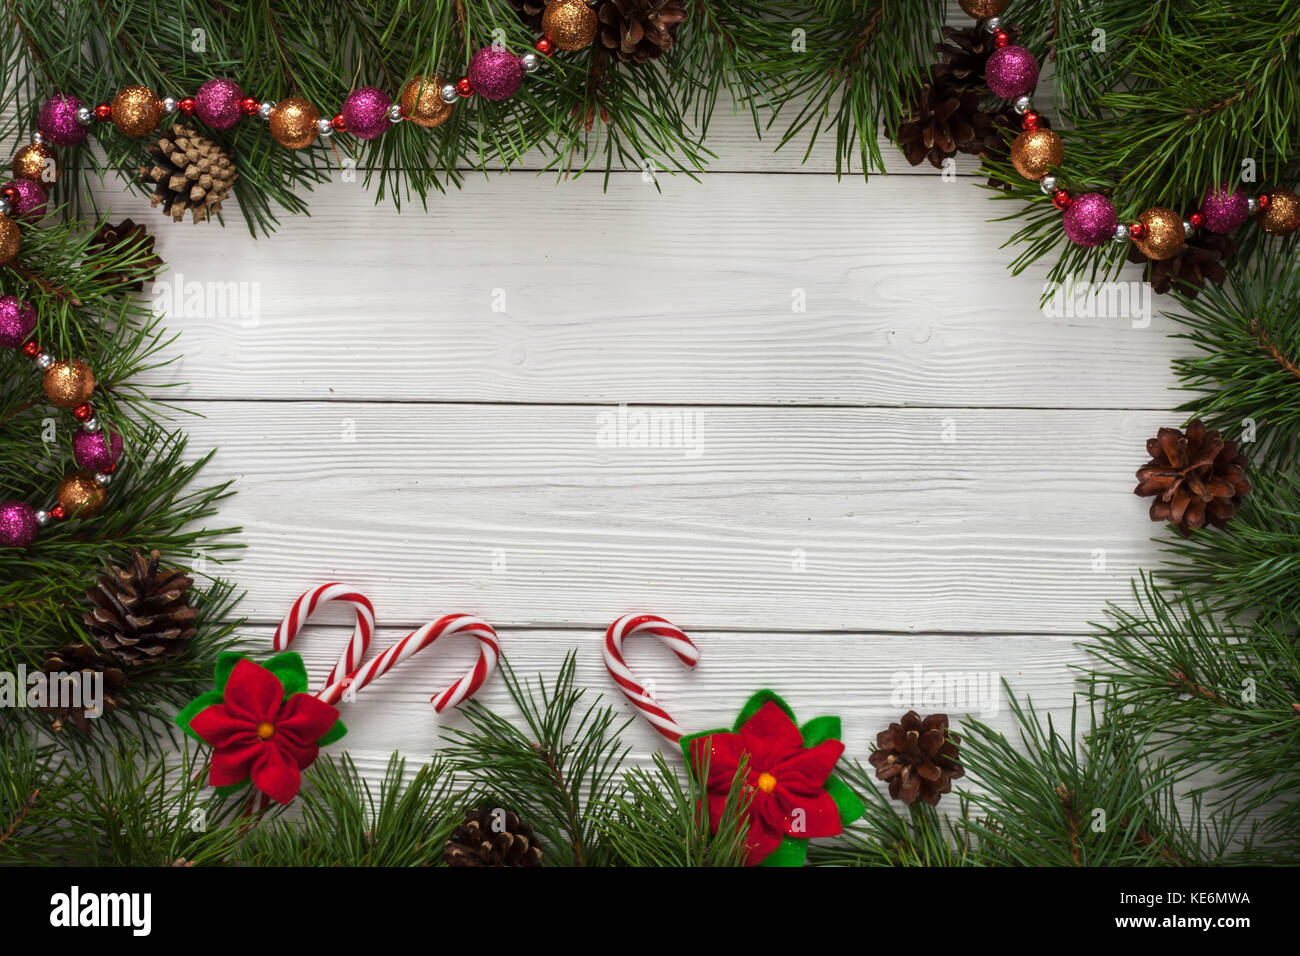 Christmas Card Border.Template For Christmas Card With Fir Tree Border And Copy